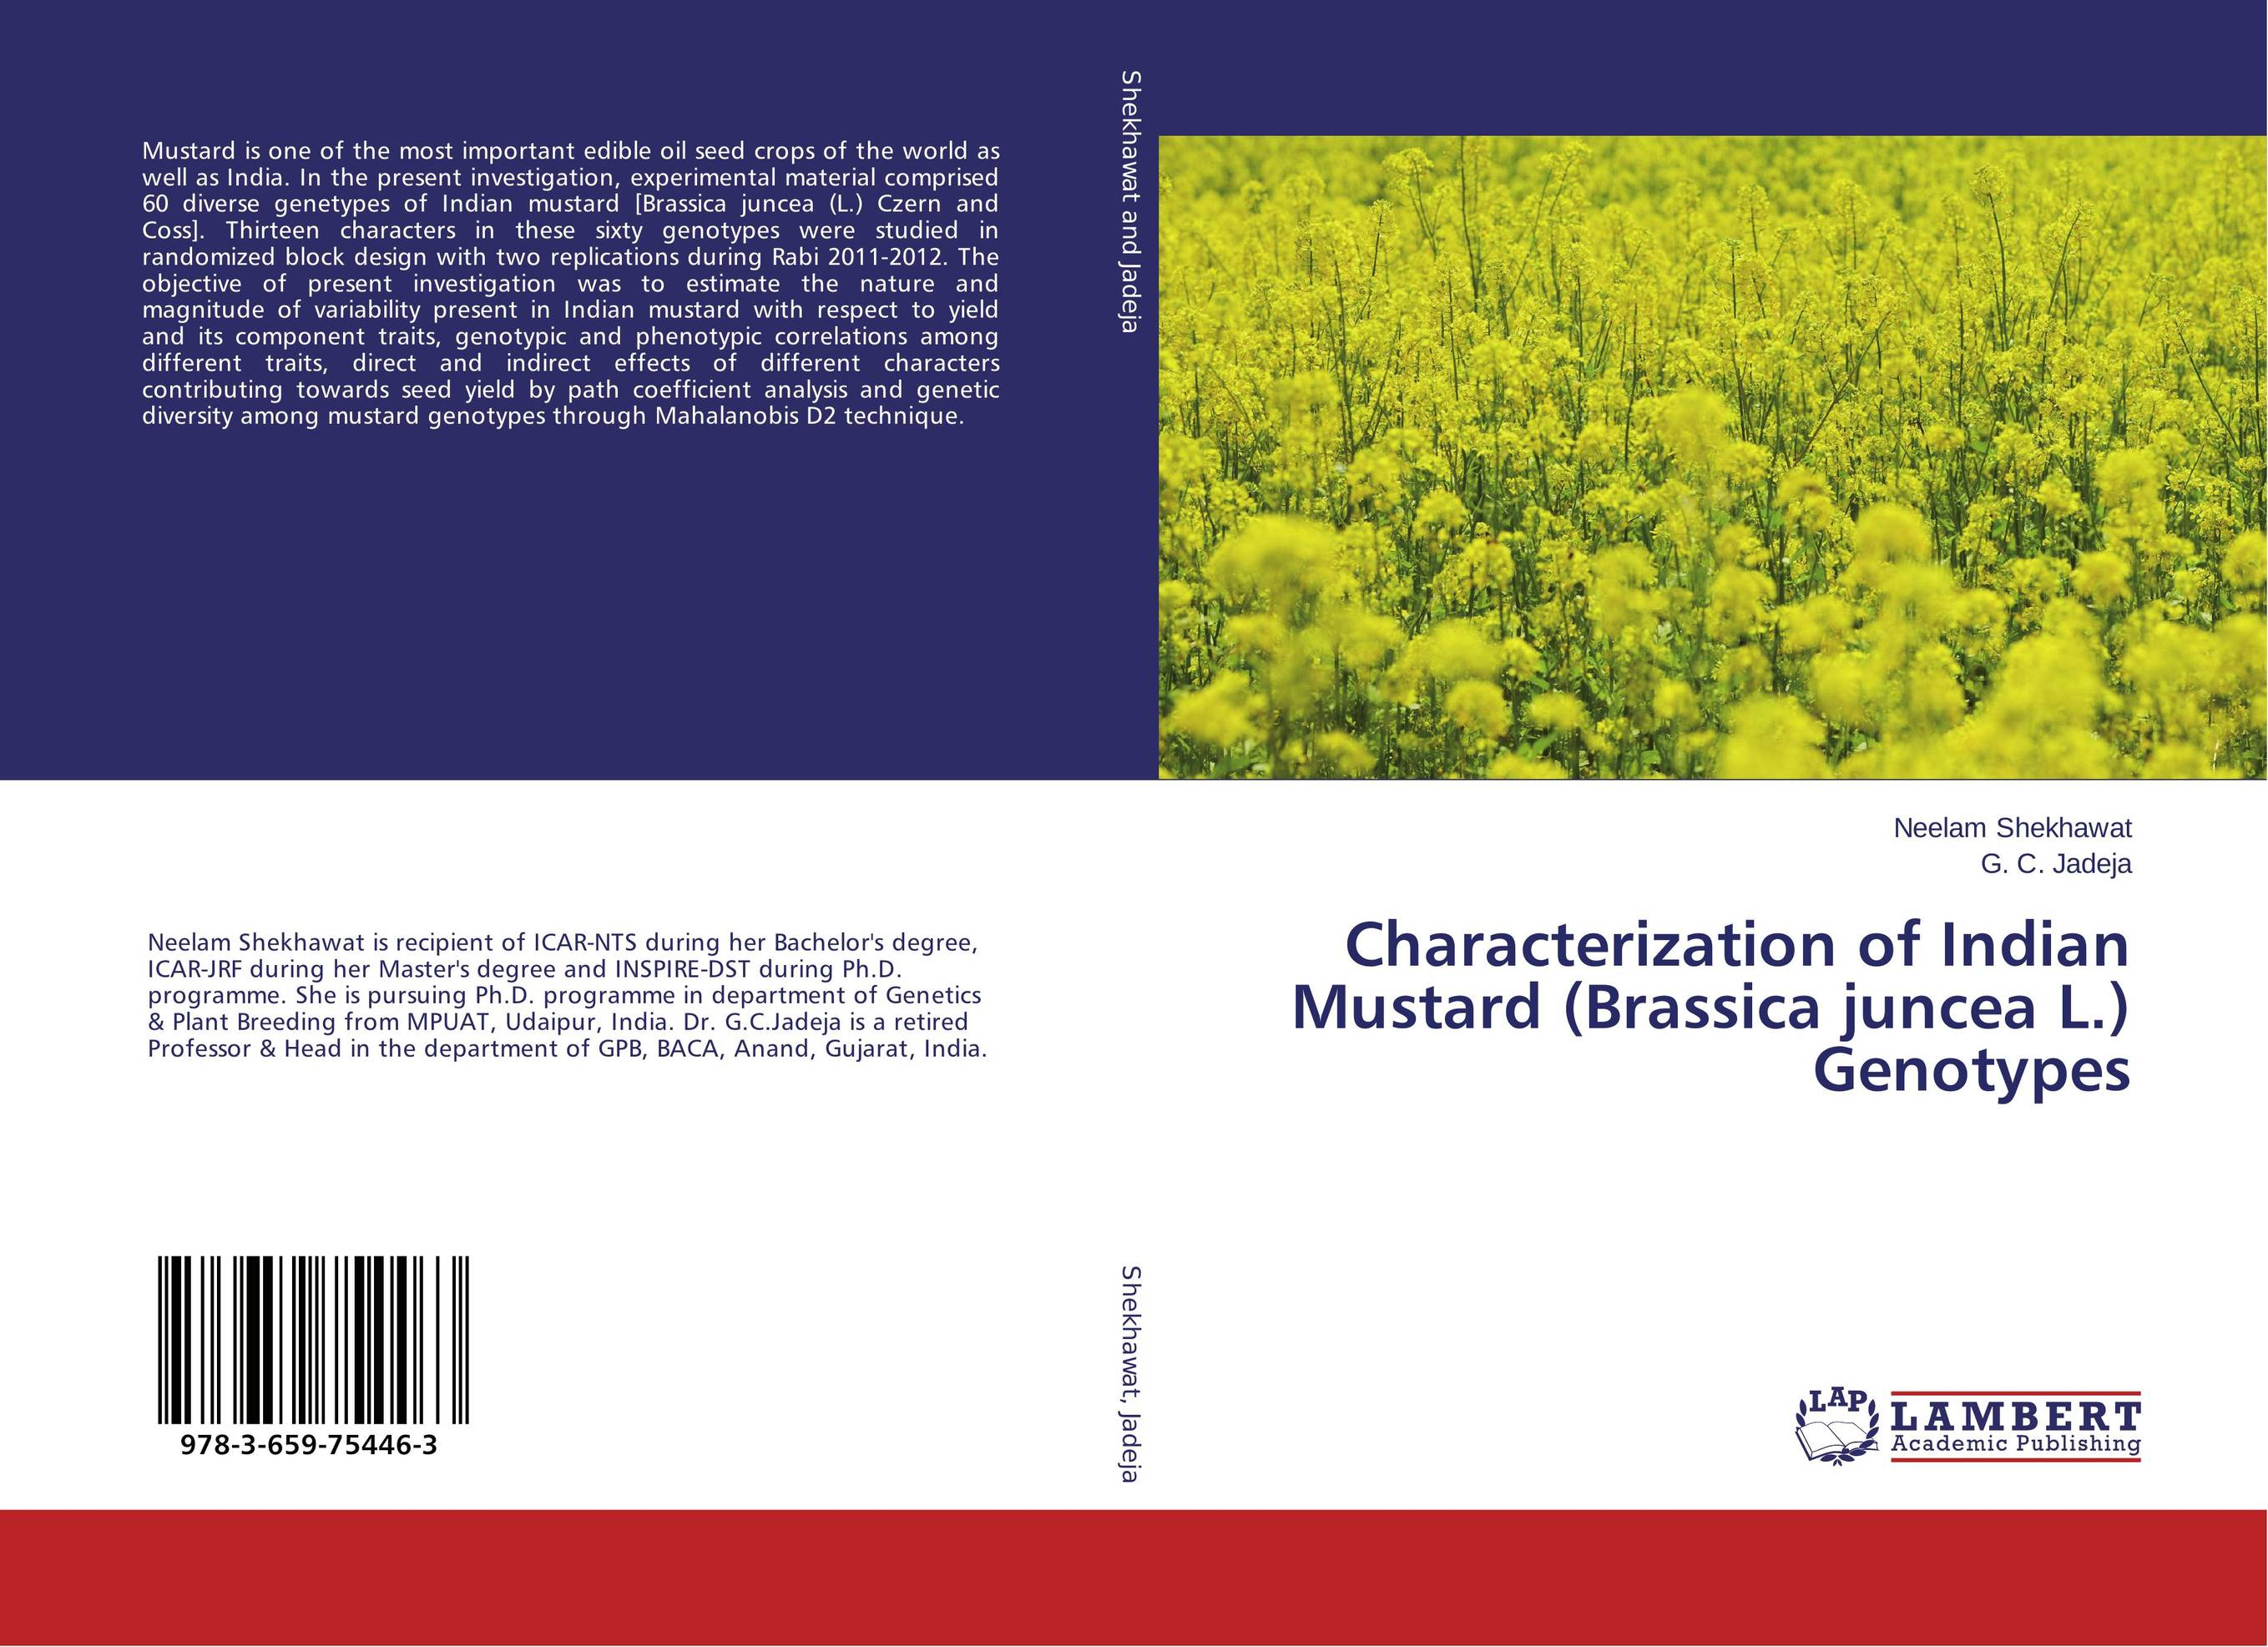 Characterization of Indian Mustard (Brassica juncea L.) Genotypes binod kumar and anil pandey genetic divergence and heterosis in indian mustard